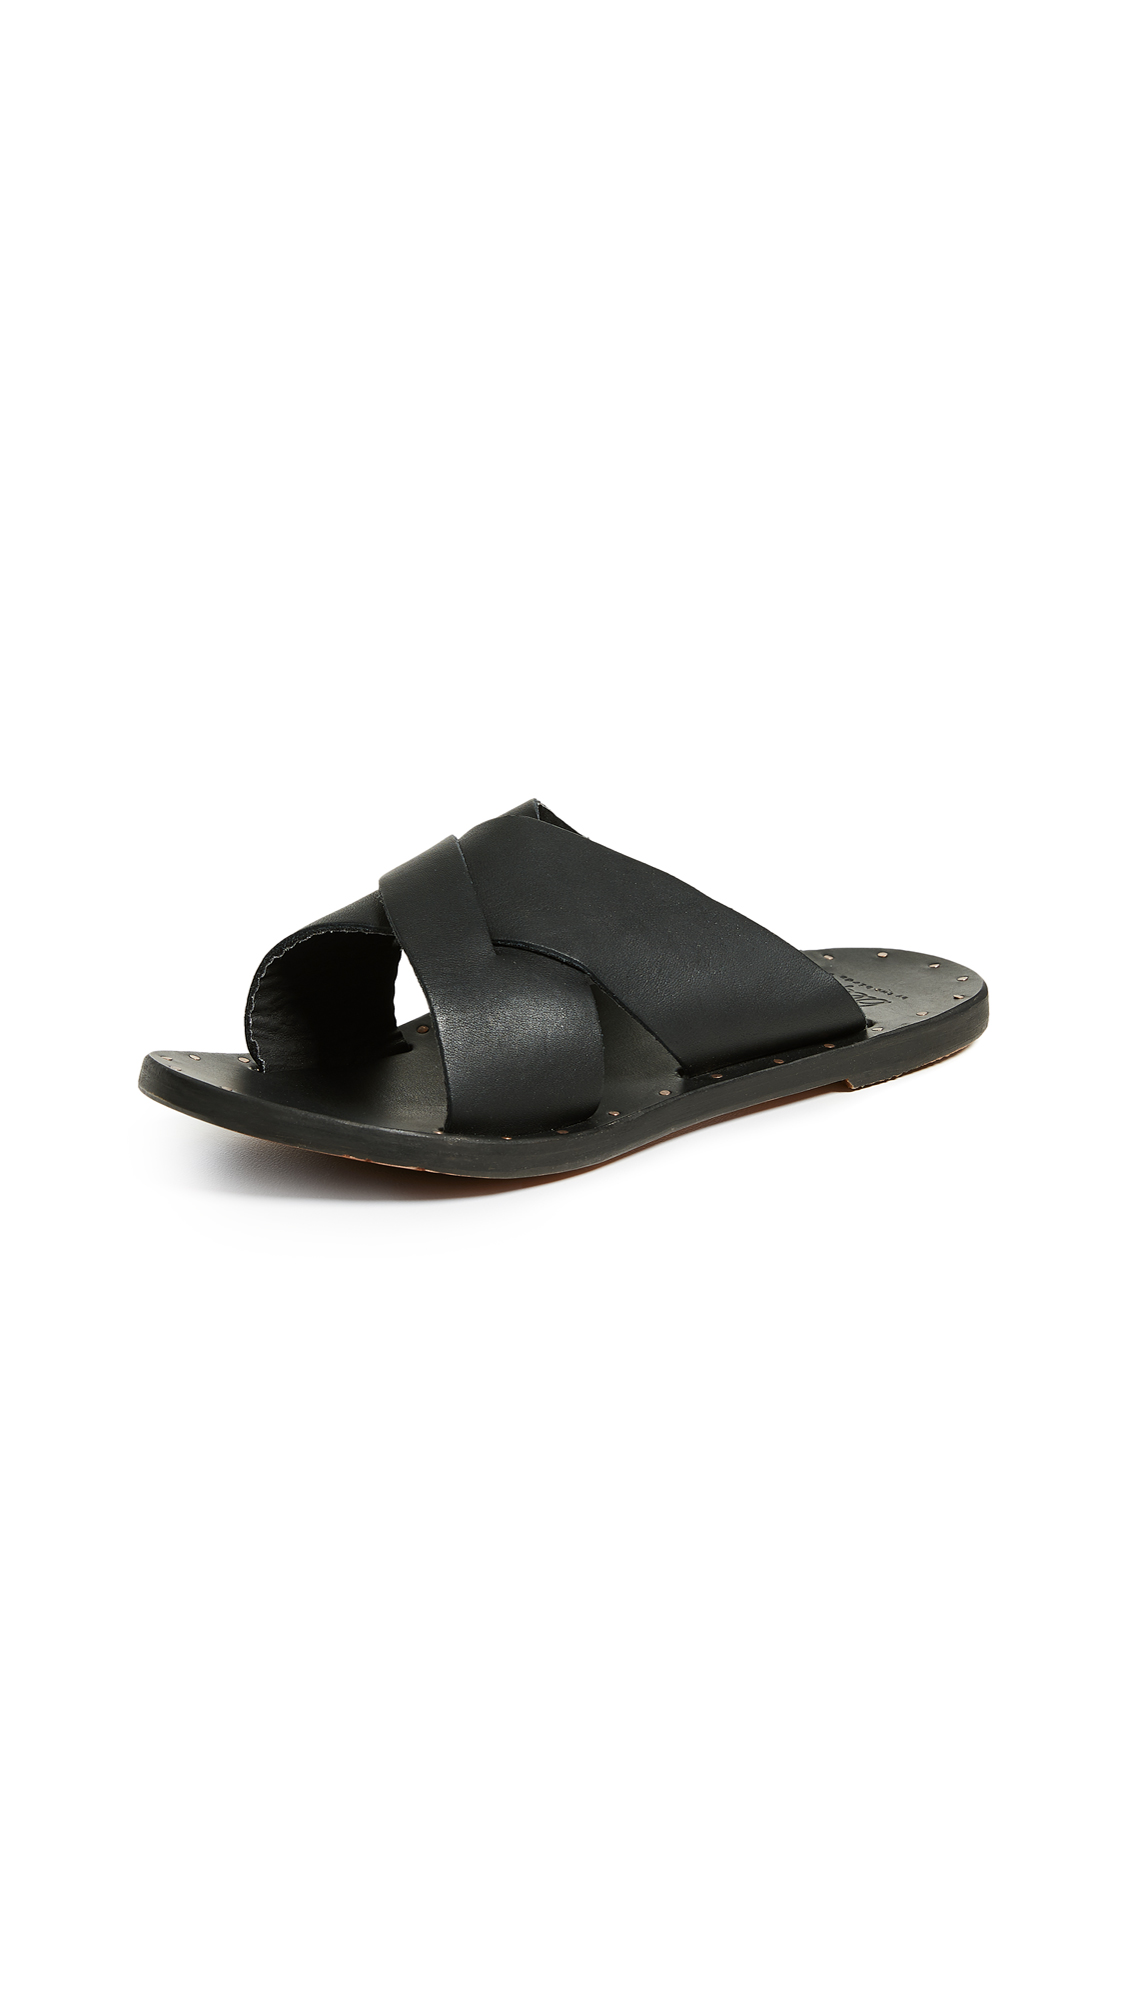 beek Gull Slide - Black/Black